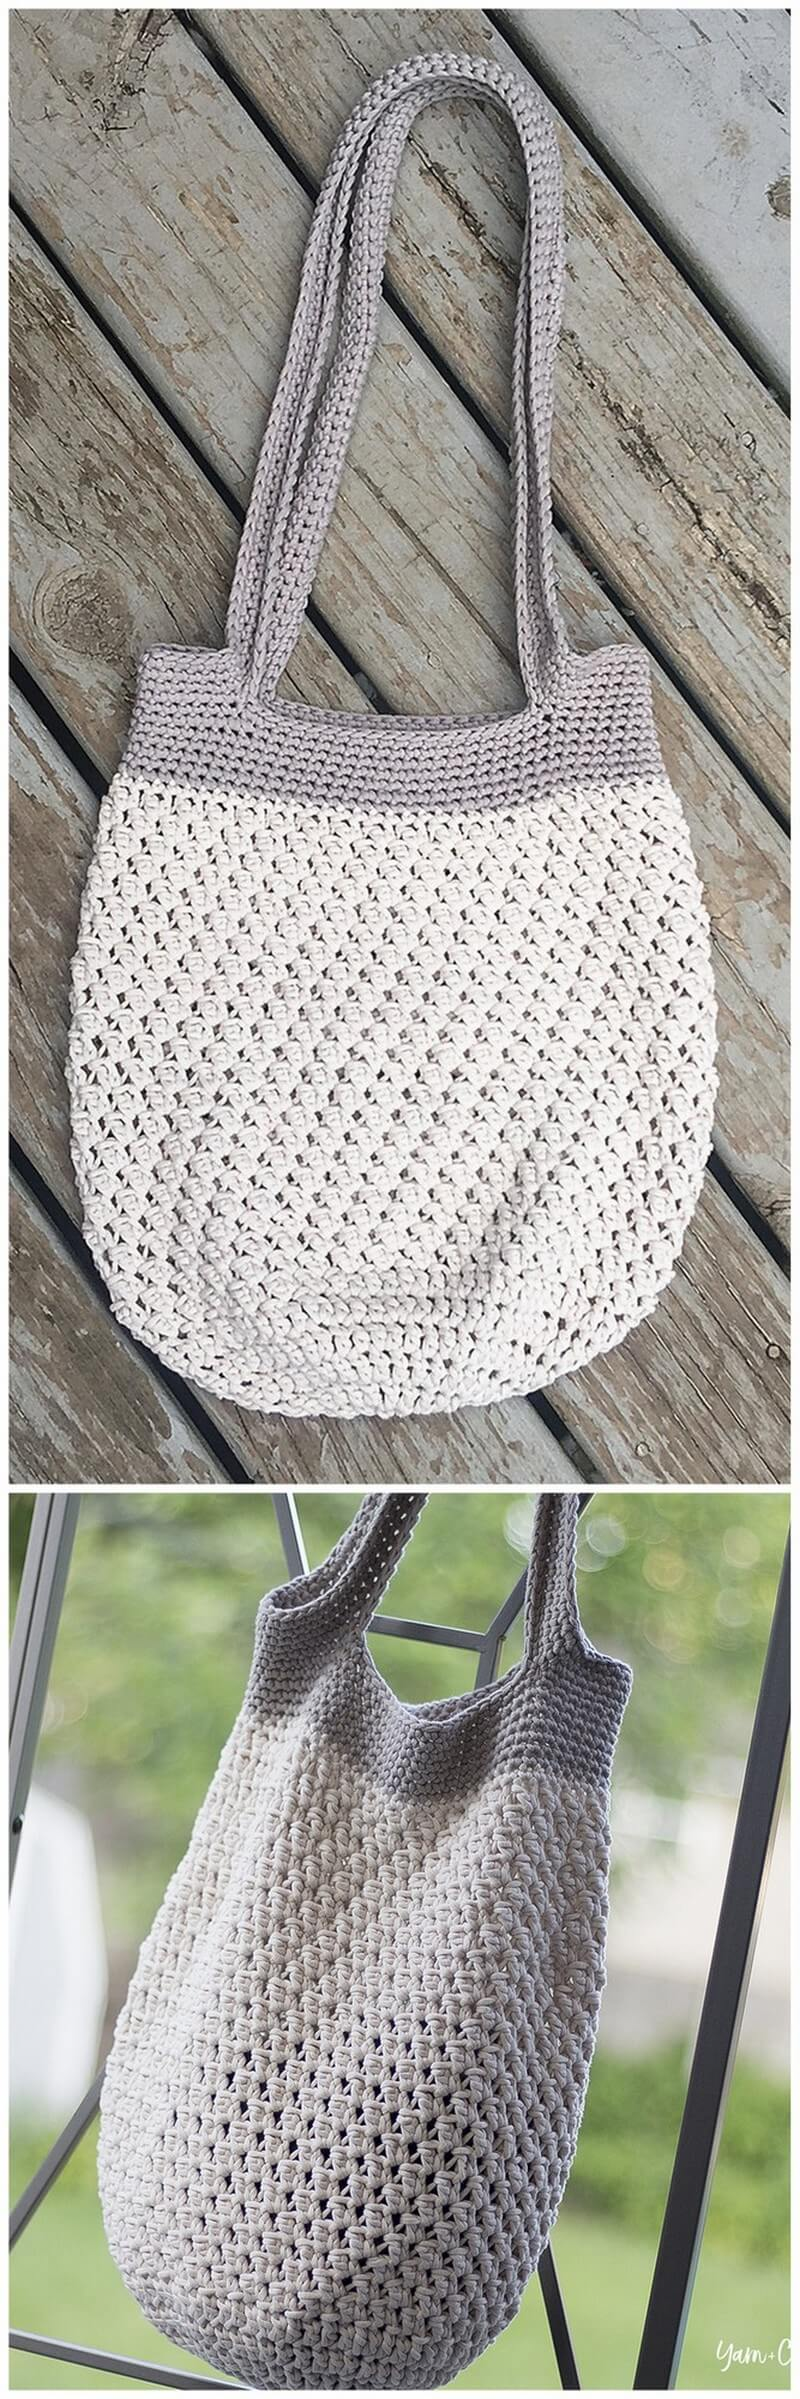 Crochet Bag Pattern (11)